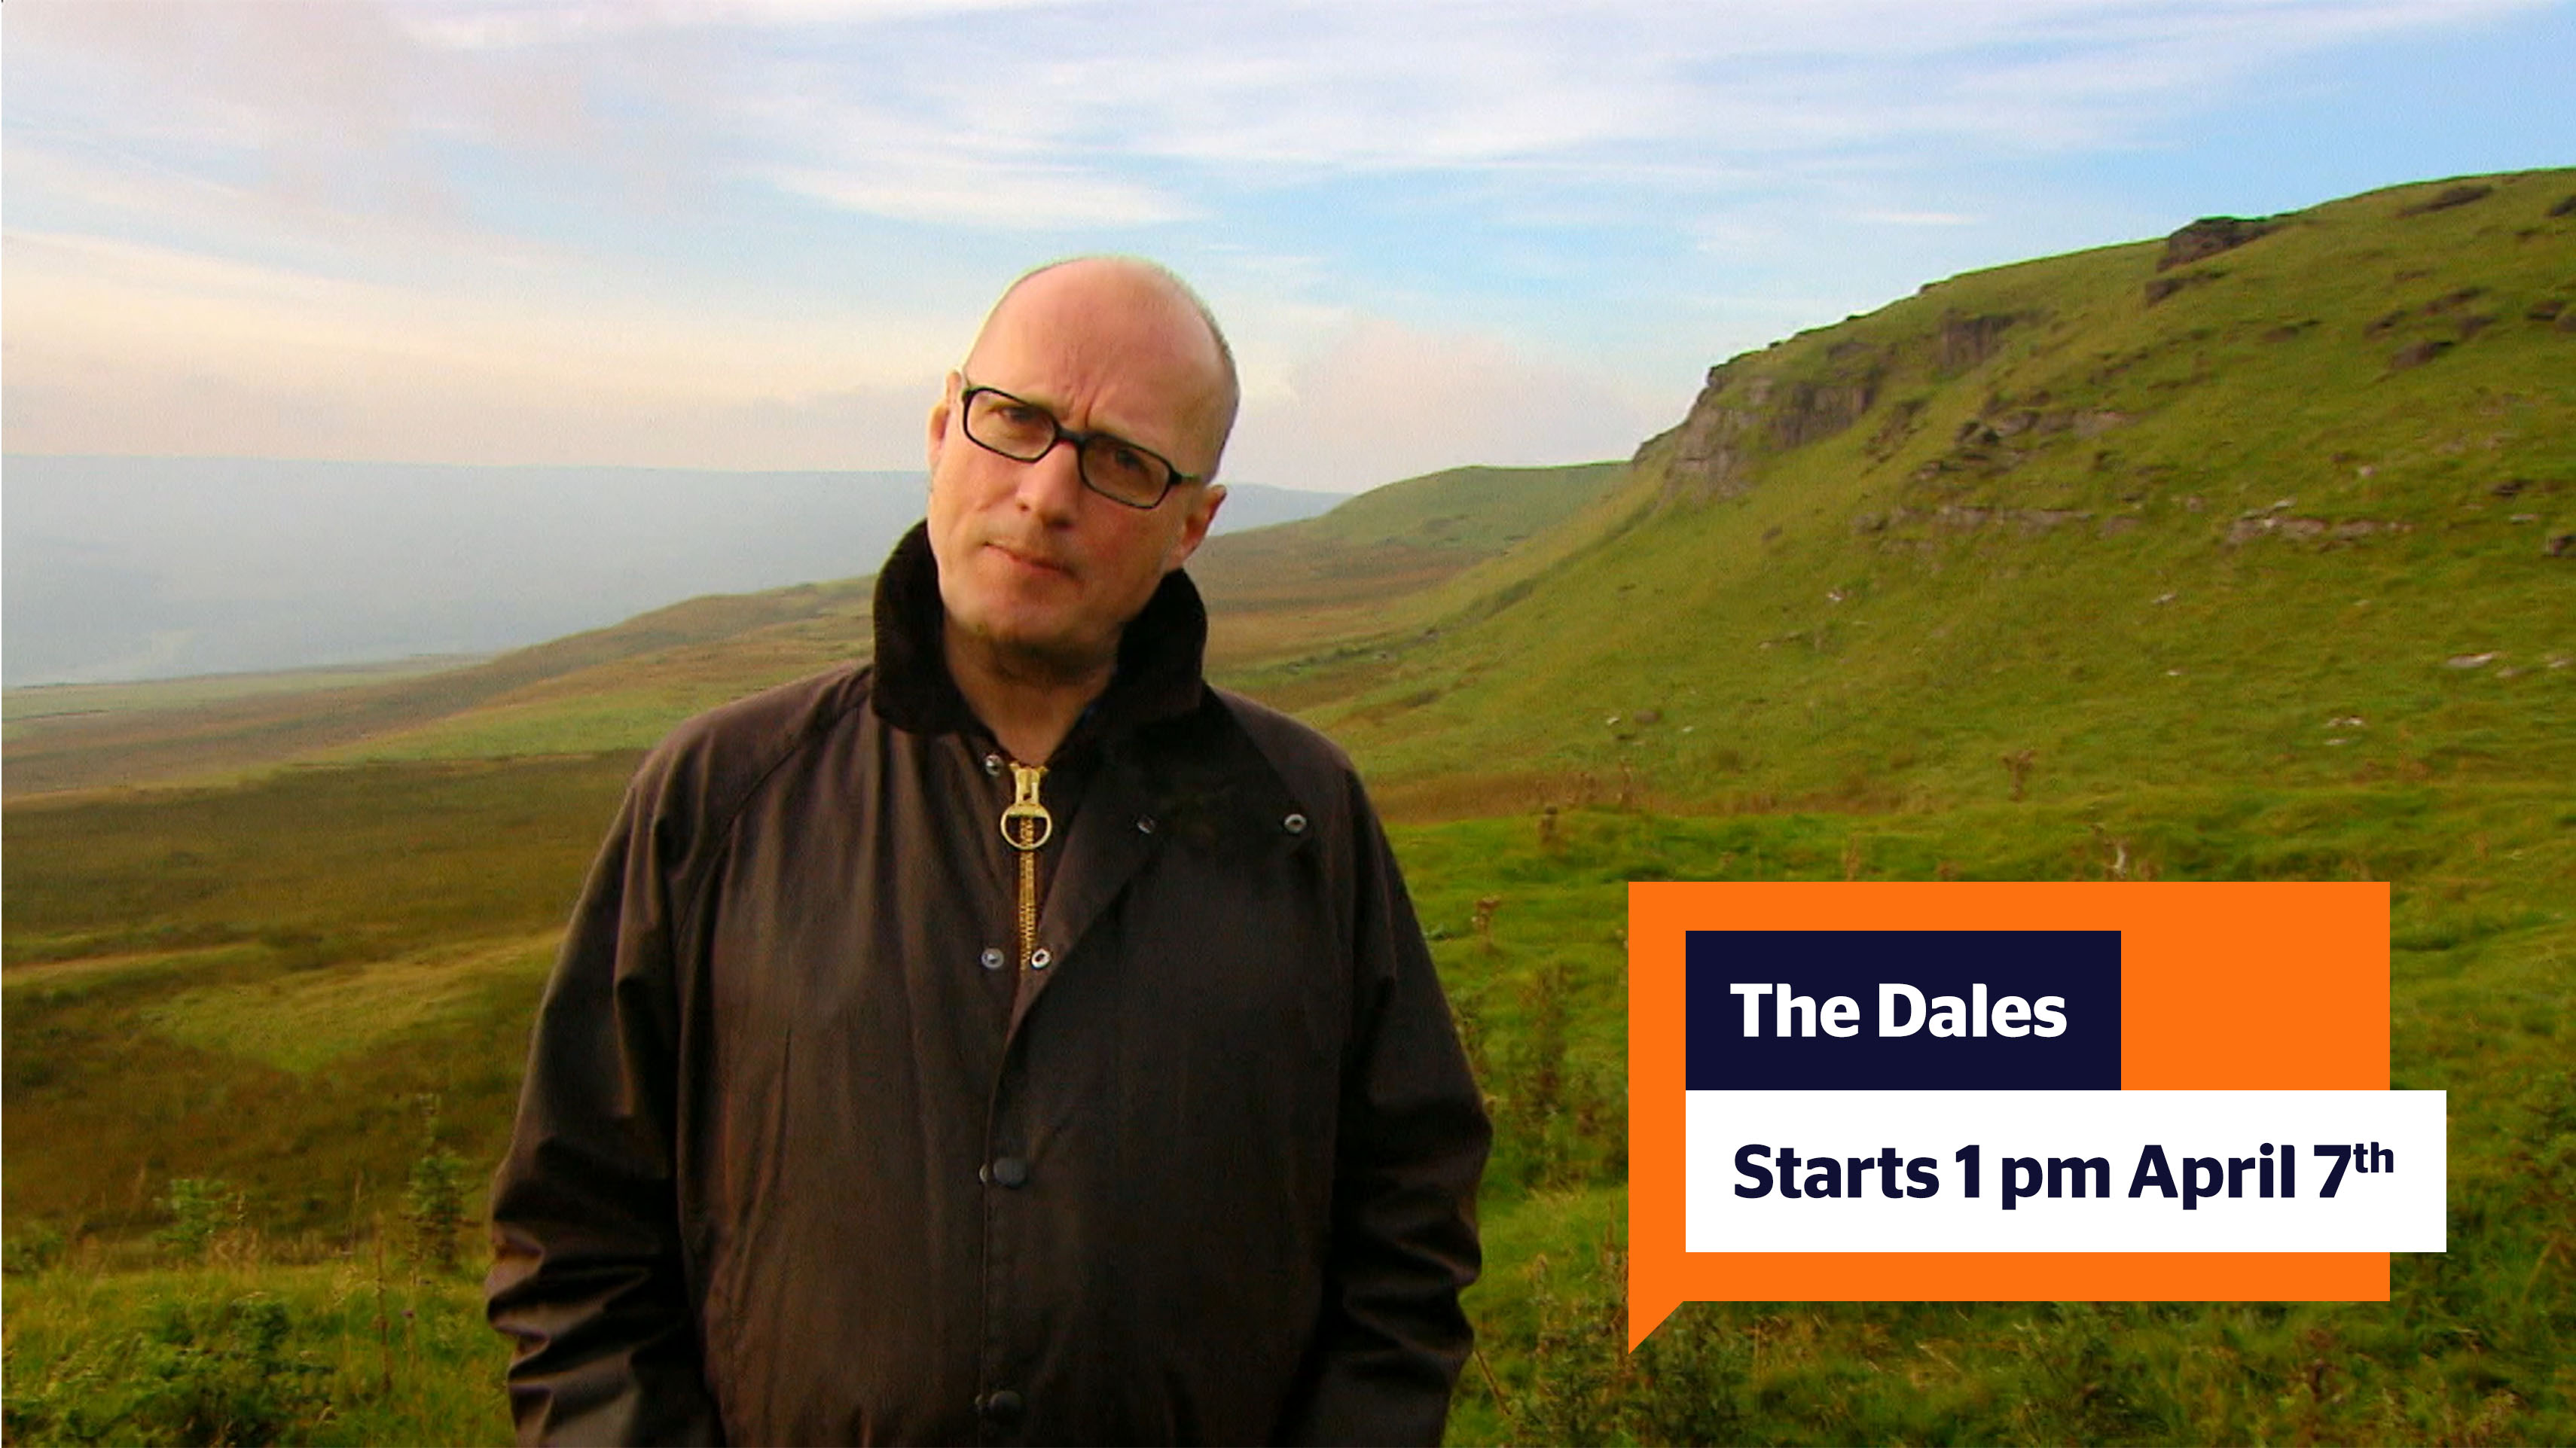 "A still from the series 'The Dales' of Adrian Edmondson (a bald man in his forties with black rectangular glasses and a black fleece coat on)facing the camera with a backdrop of the Yorkshire dales; green hills rolling for miles and a blue sky with some clouds. IN the bottom right corner is an orange speech bubble with the text ""The Dales; starts 1 pm April 7th)"